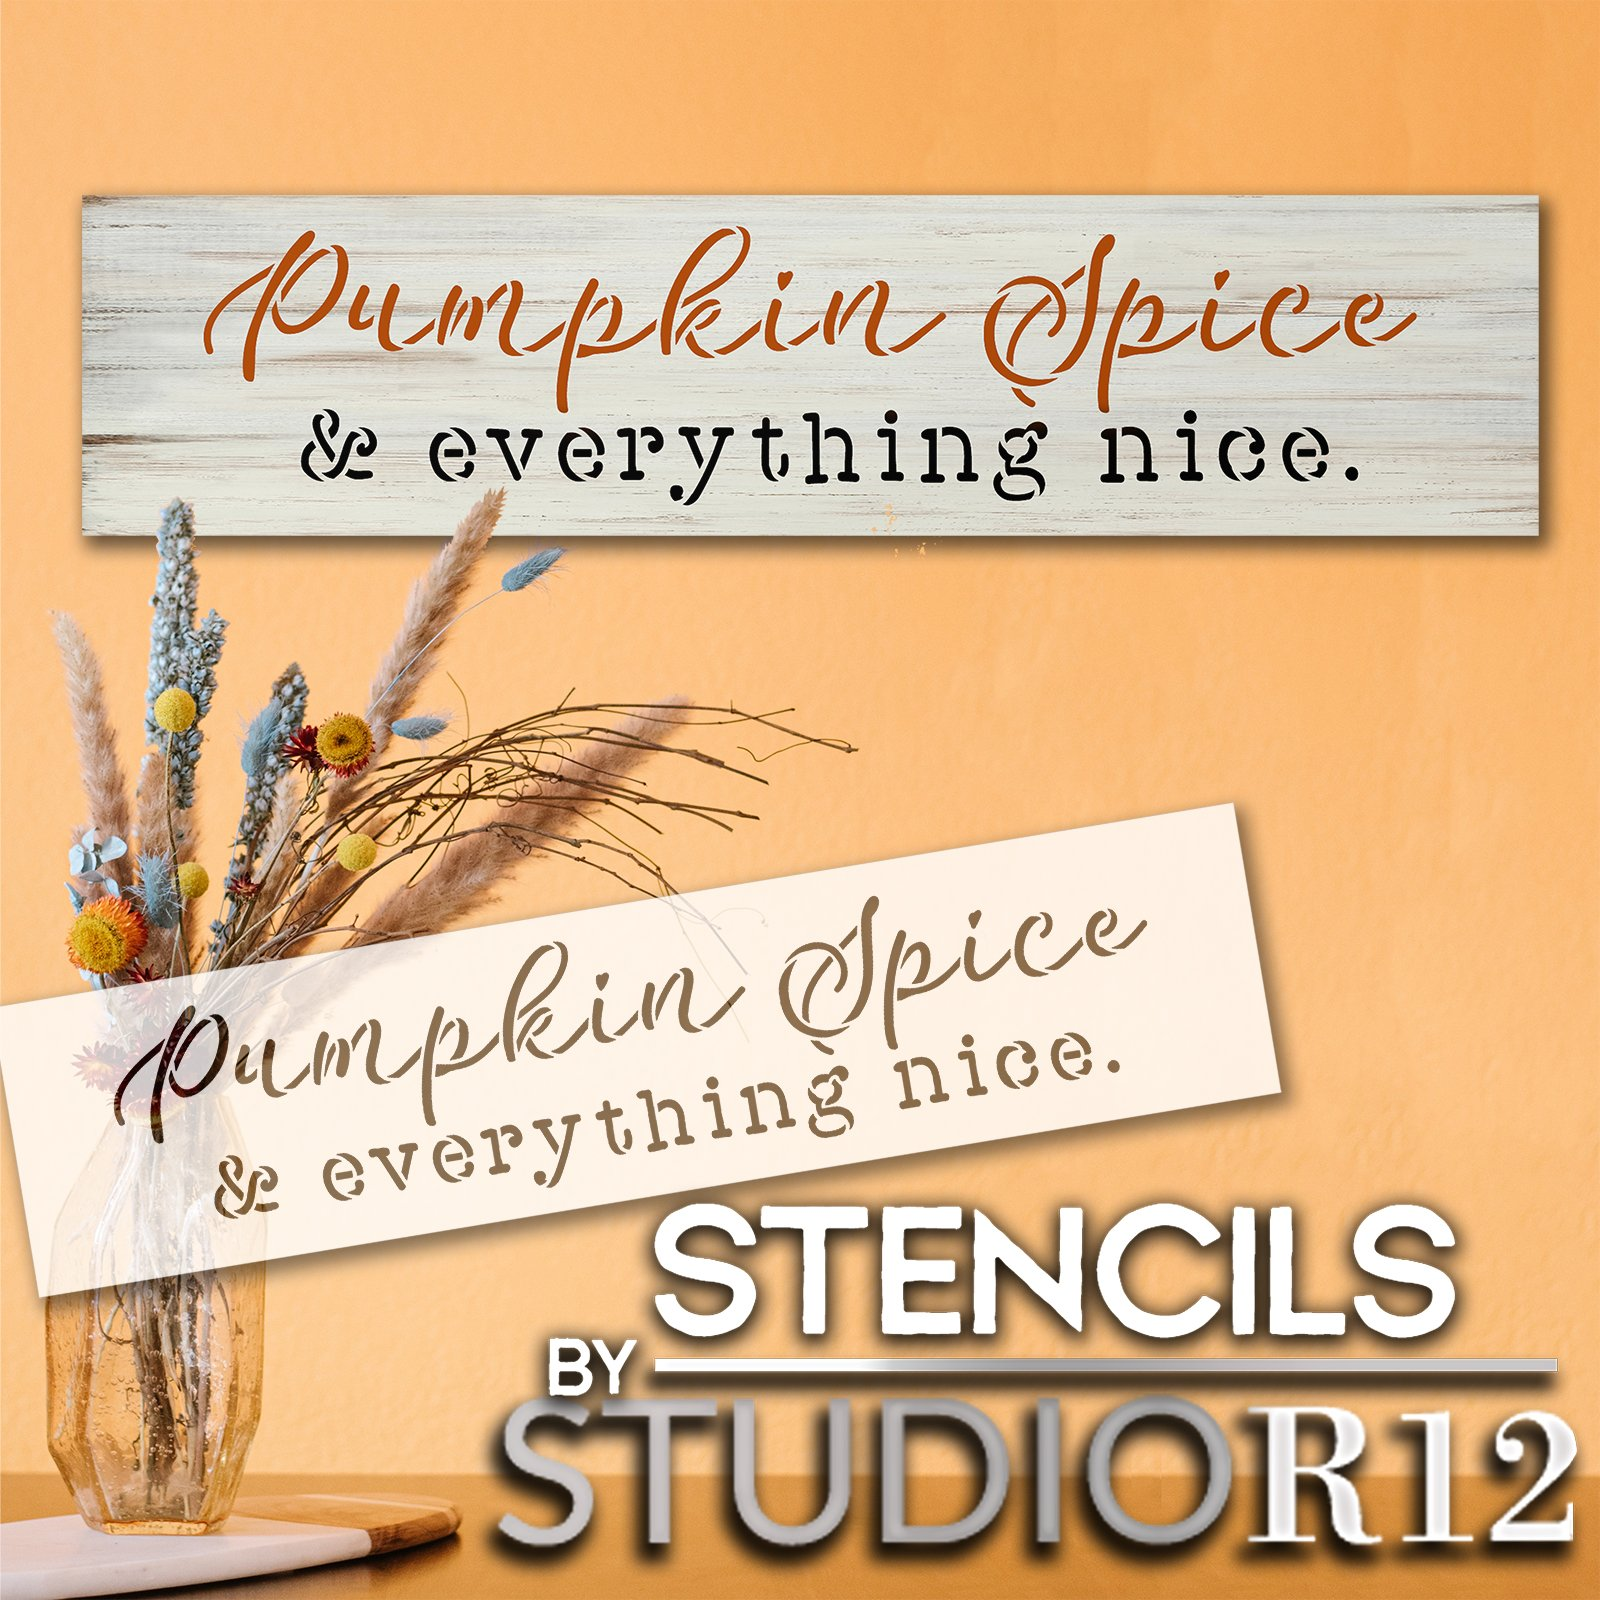 Pumpkin Spice & Everything Nice Stencil by StudioR12   DIY Fall Home Decor   Craft & Paint Autumn Wood Sign   Reusable Mylar Template   Select Size